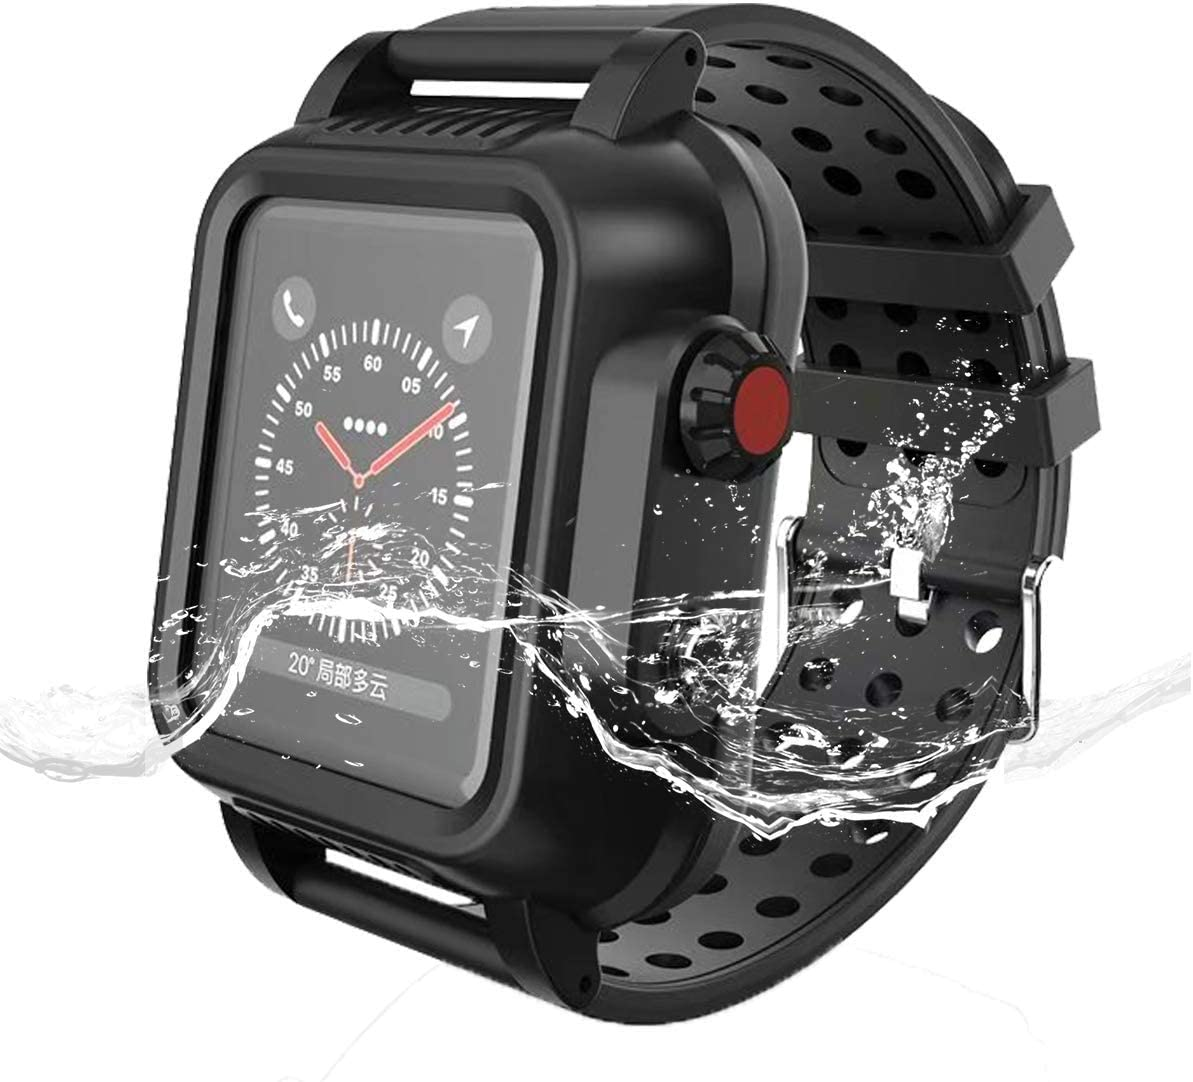 Waterproof Strap Case for Apple Watch Series 6 SE 44mm iWatch 6 5 4 Heavy Duty Ruggered,Built-in Screen Protector,Full Body Rugged Cover iWatch Case with Band for Swmming,Diving, Skiing,Climbing